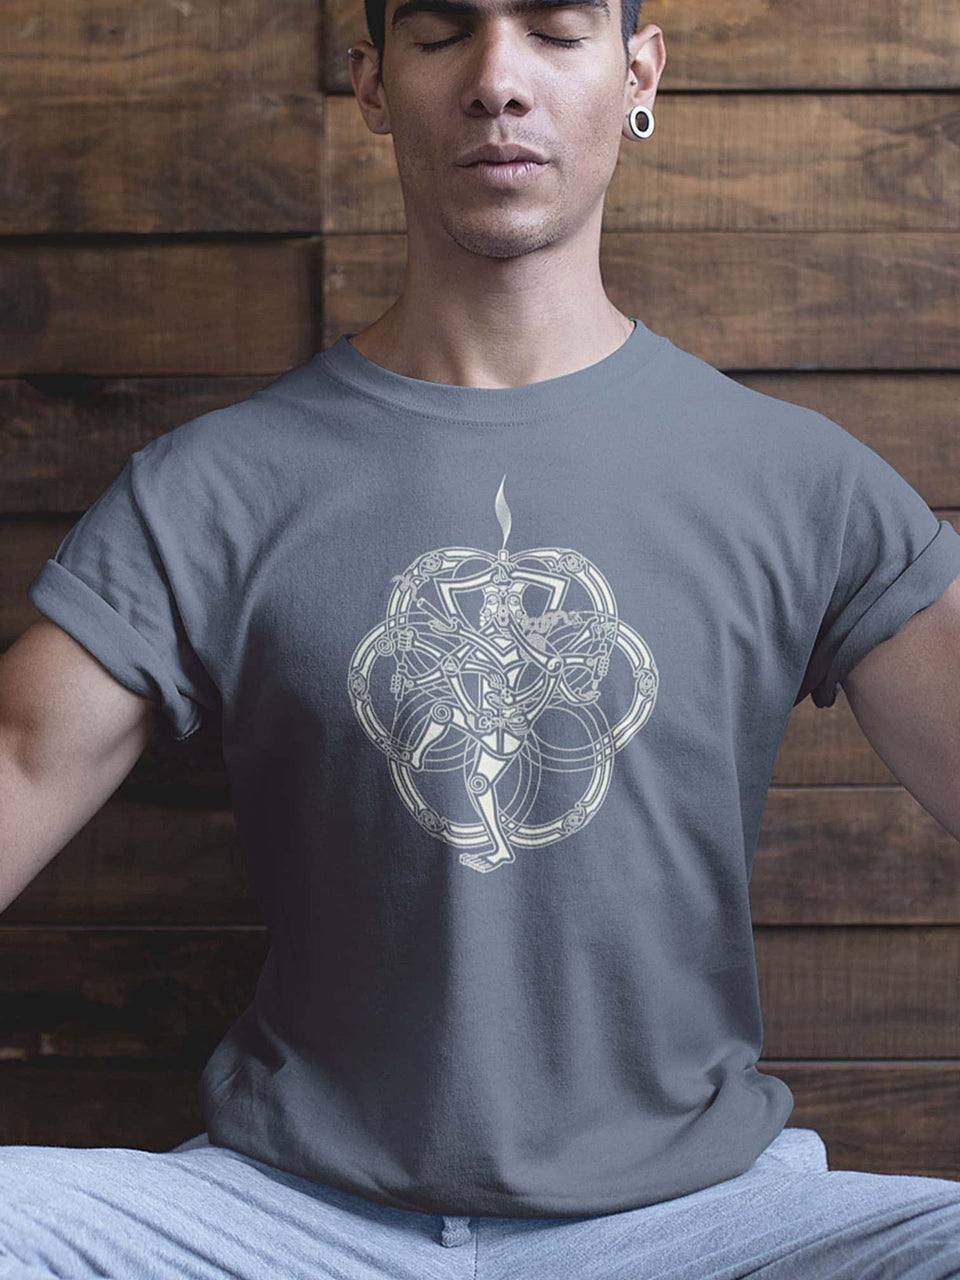 Chillum Yoga Mandala Made To Order Men T-Shirt - Light Charcoal